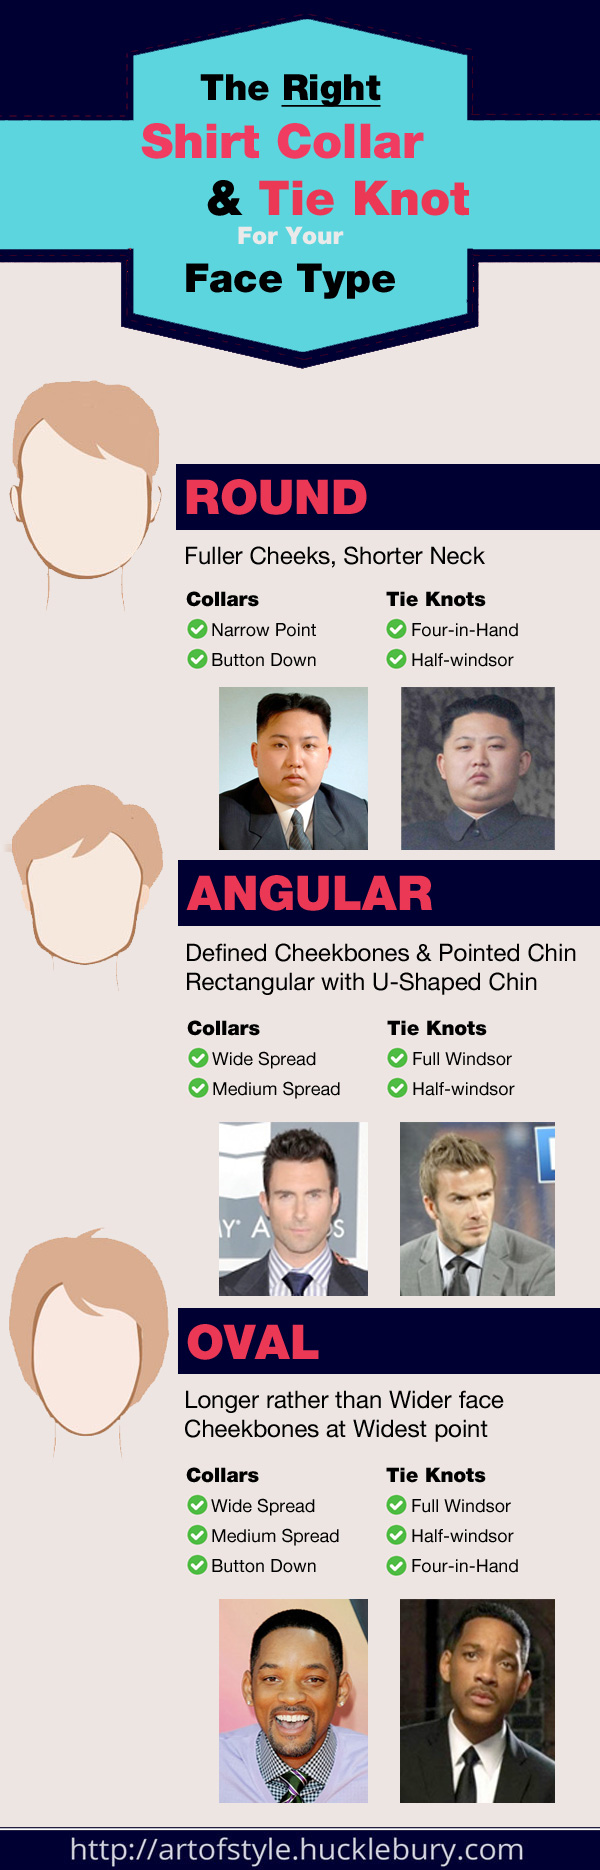 The Right Shirt Collar and Tie Knot for Your Face Type Infographic